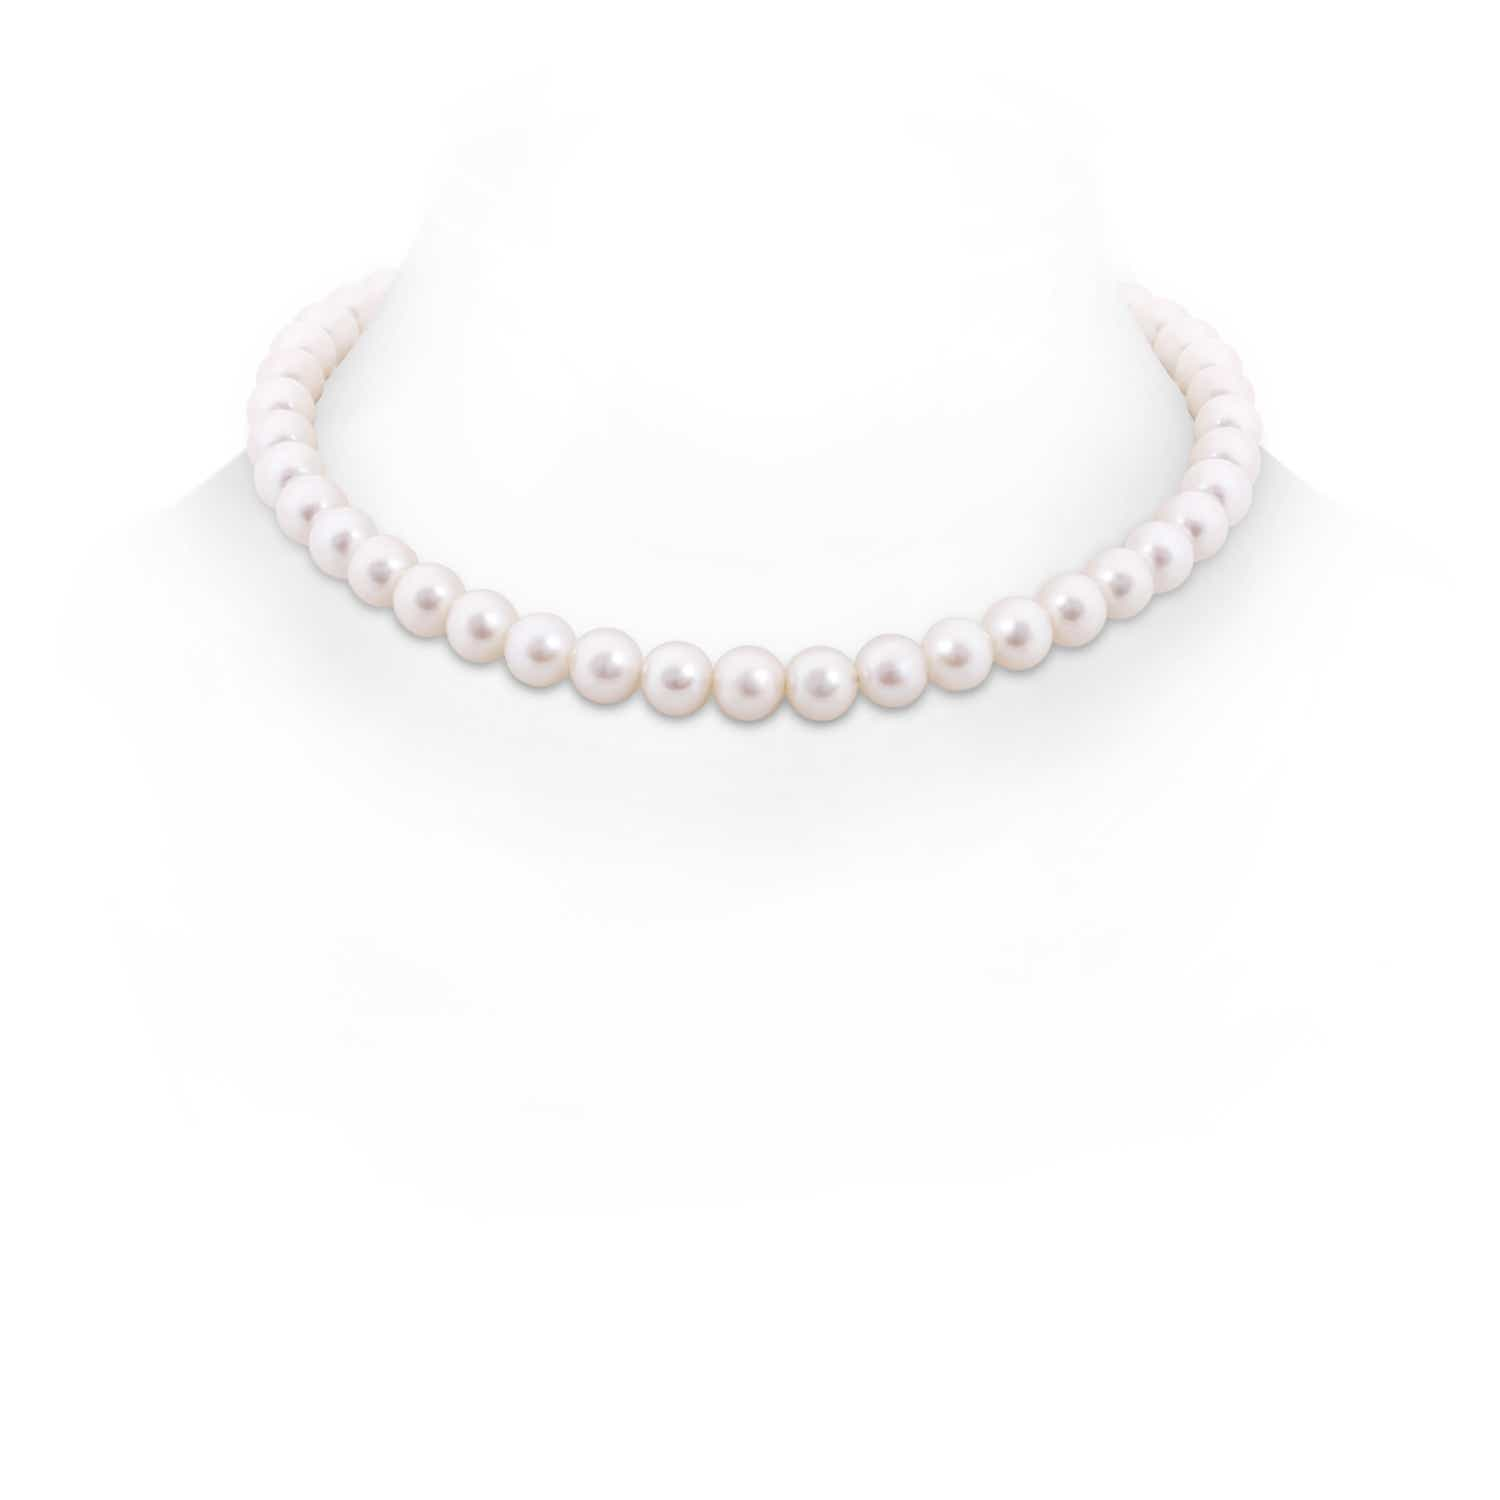 16 Freshwater Cultured Pearl Single Strand Choker Necklace